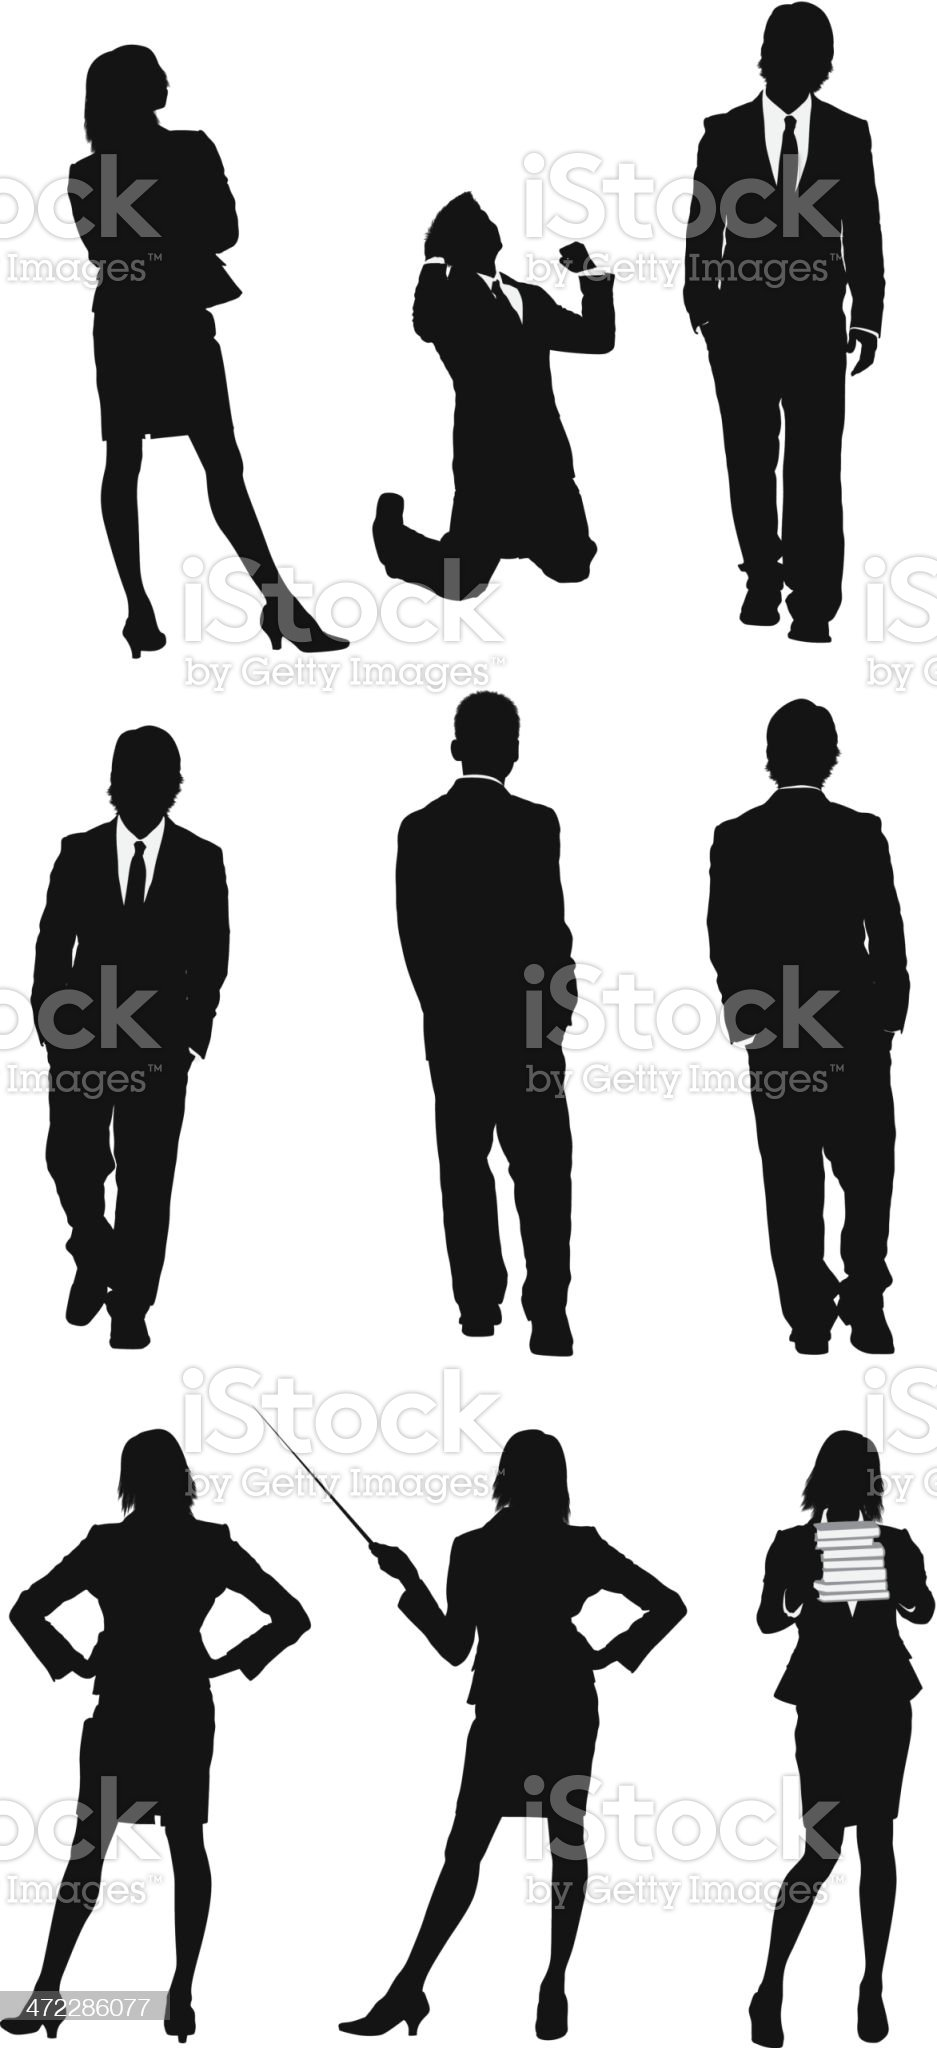 Business executives in different poses royalty-free stock vector art